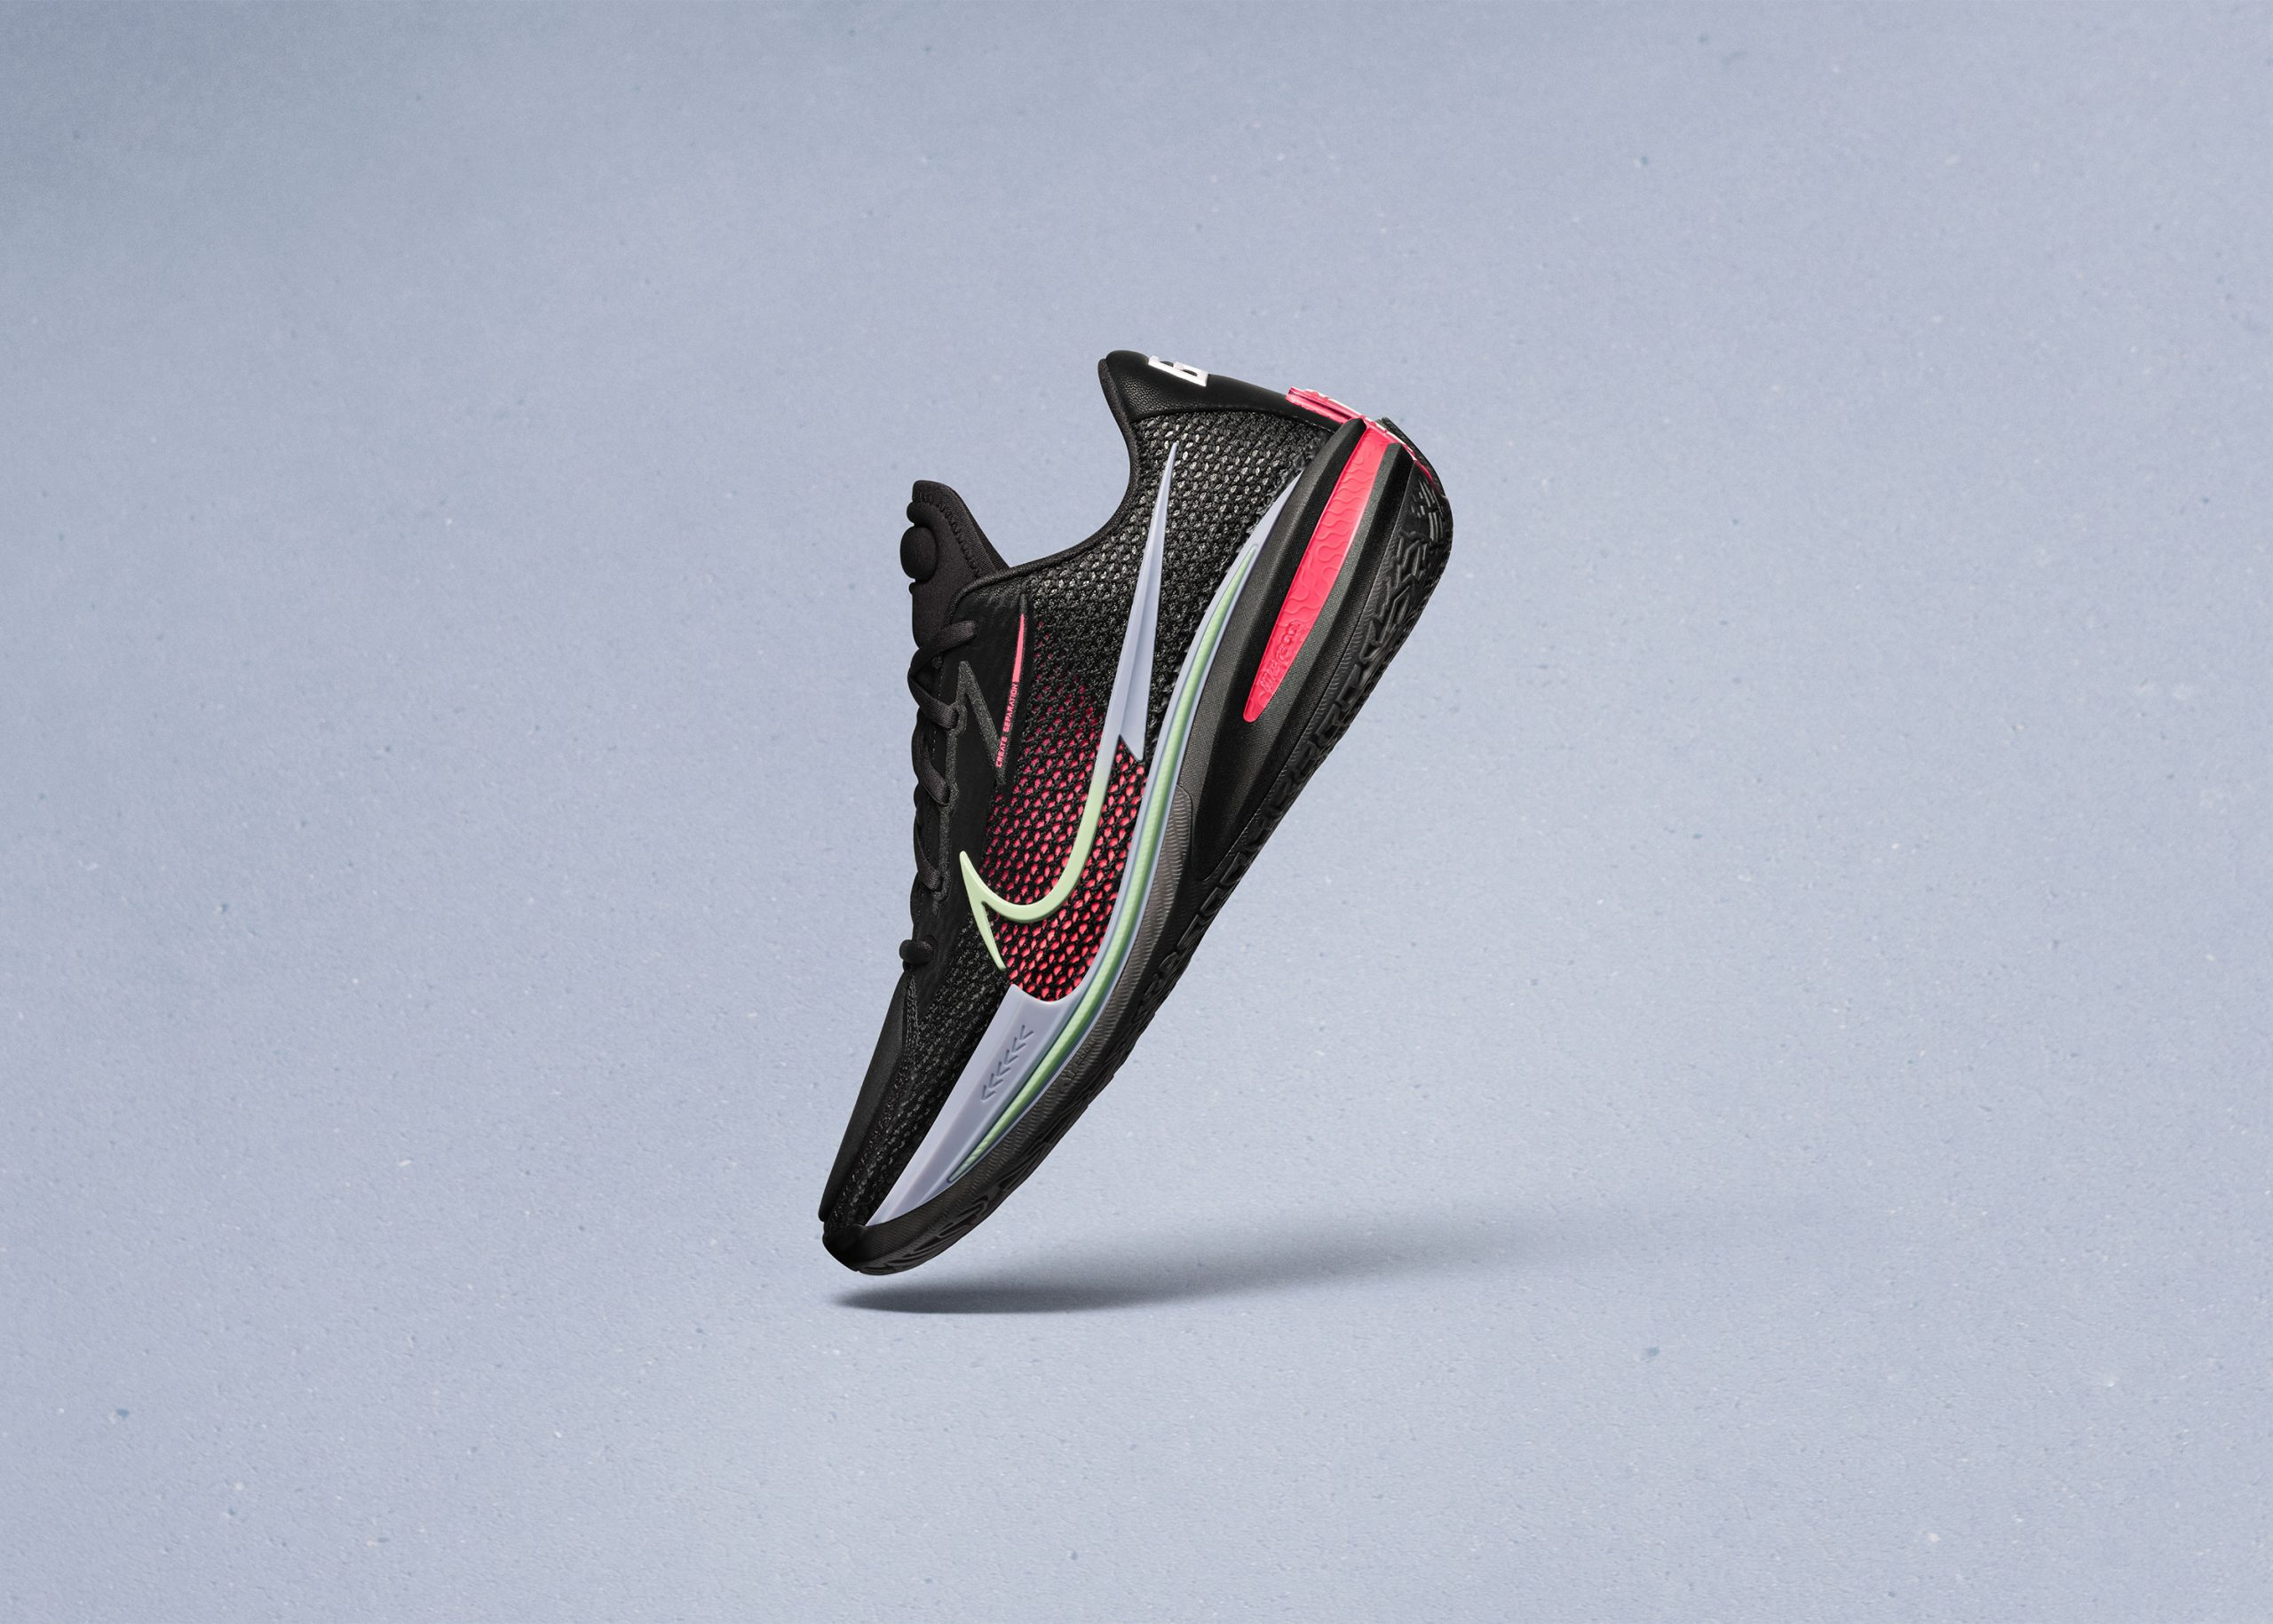 Nike Basketball Introduces the Air Zoom 'Greater Than' Series